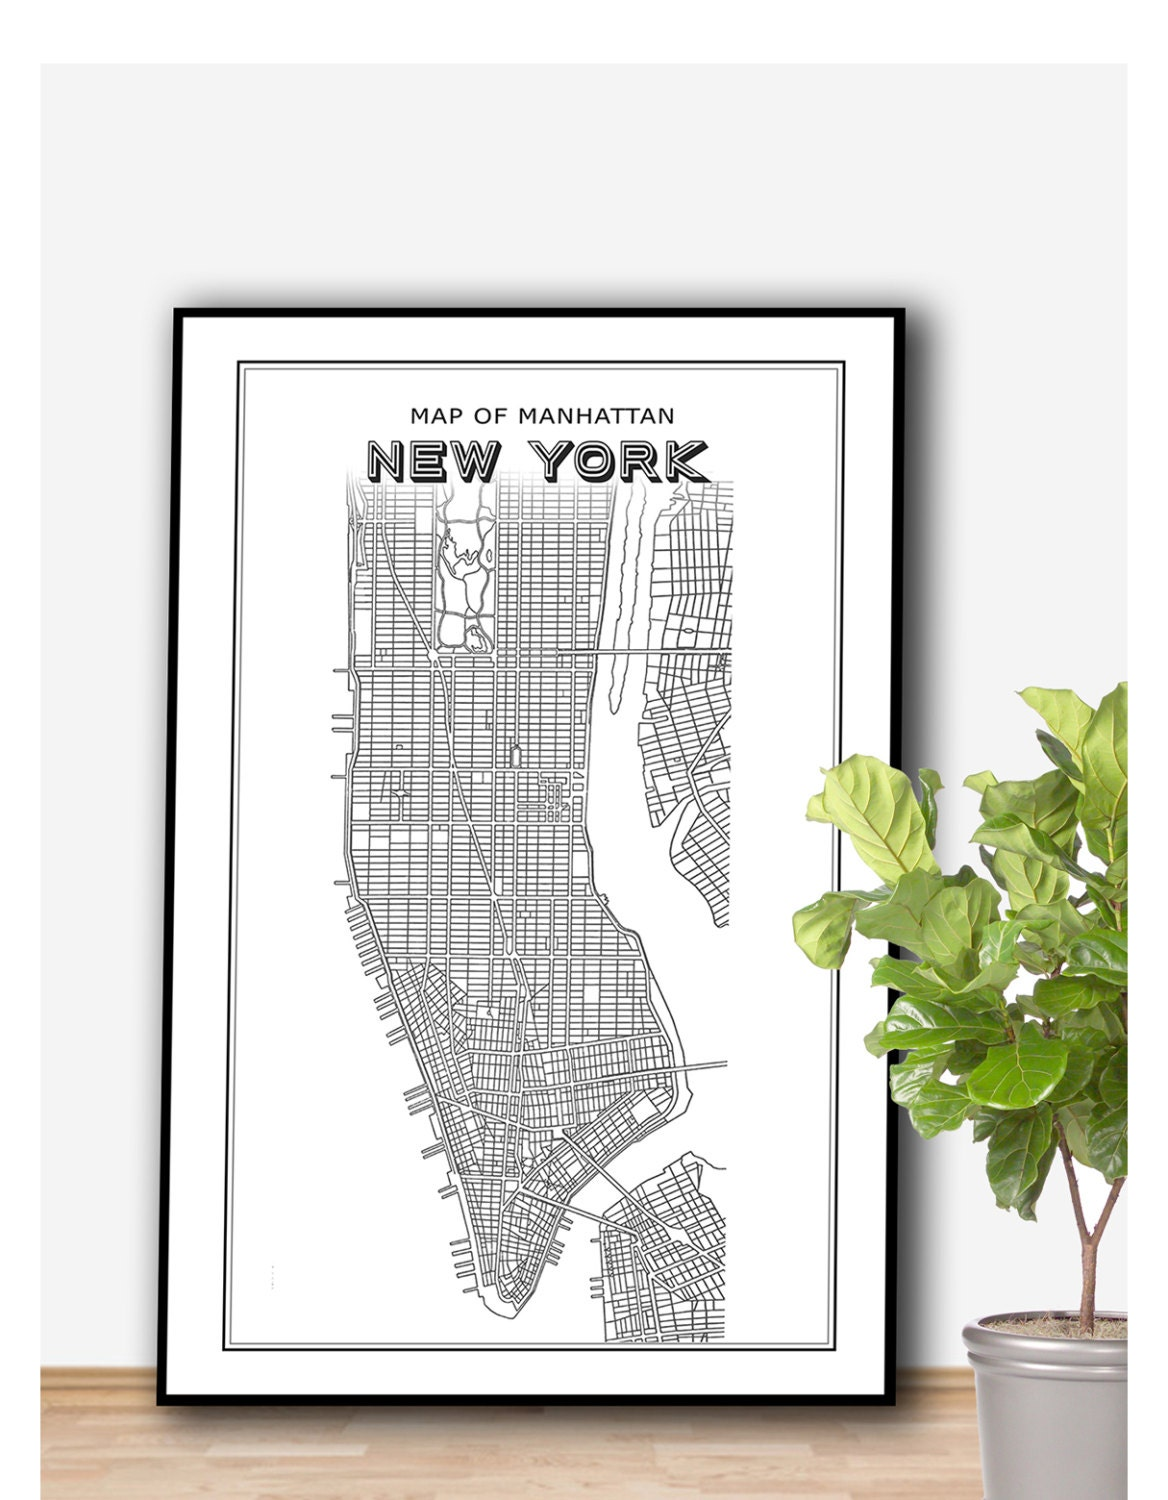 new york tavlor stor tavla new york frn ikea 2 zoom canvas image new york u2013 manhattan new. Black Bedroom Furniture Sets. Home Design Ideas